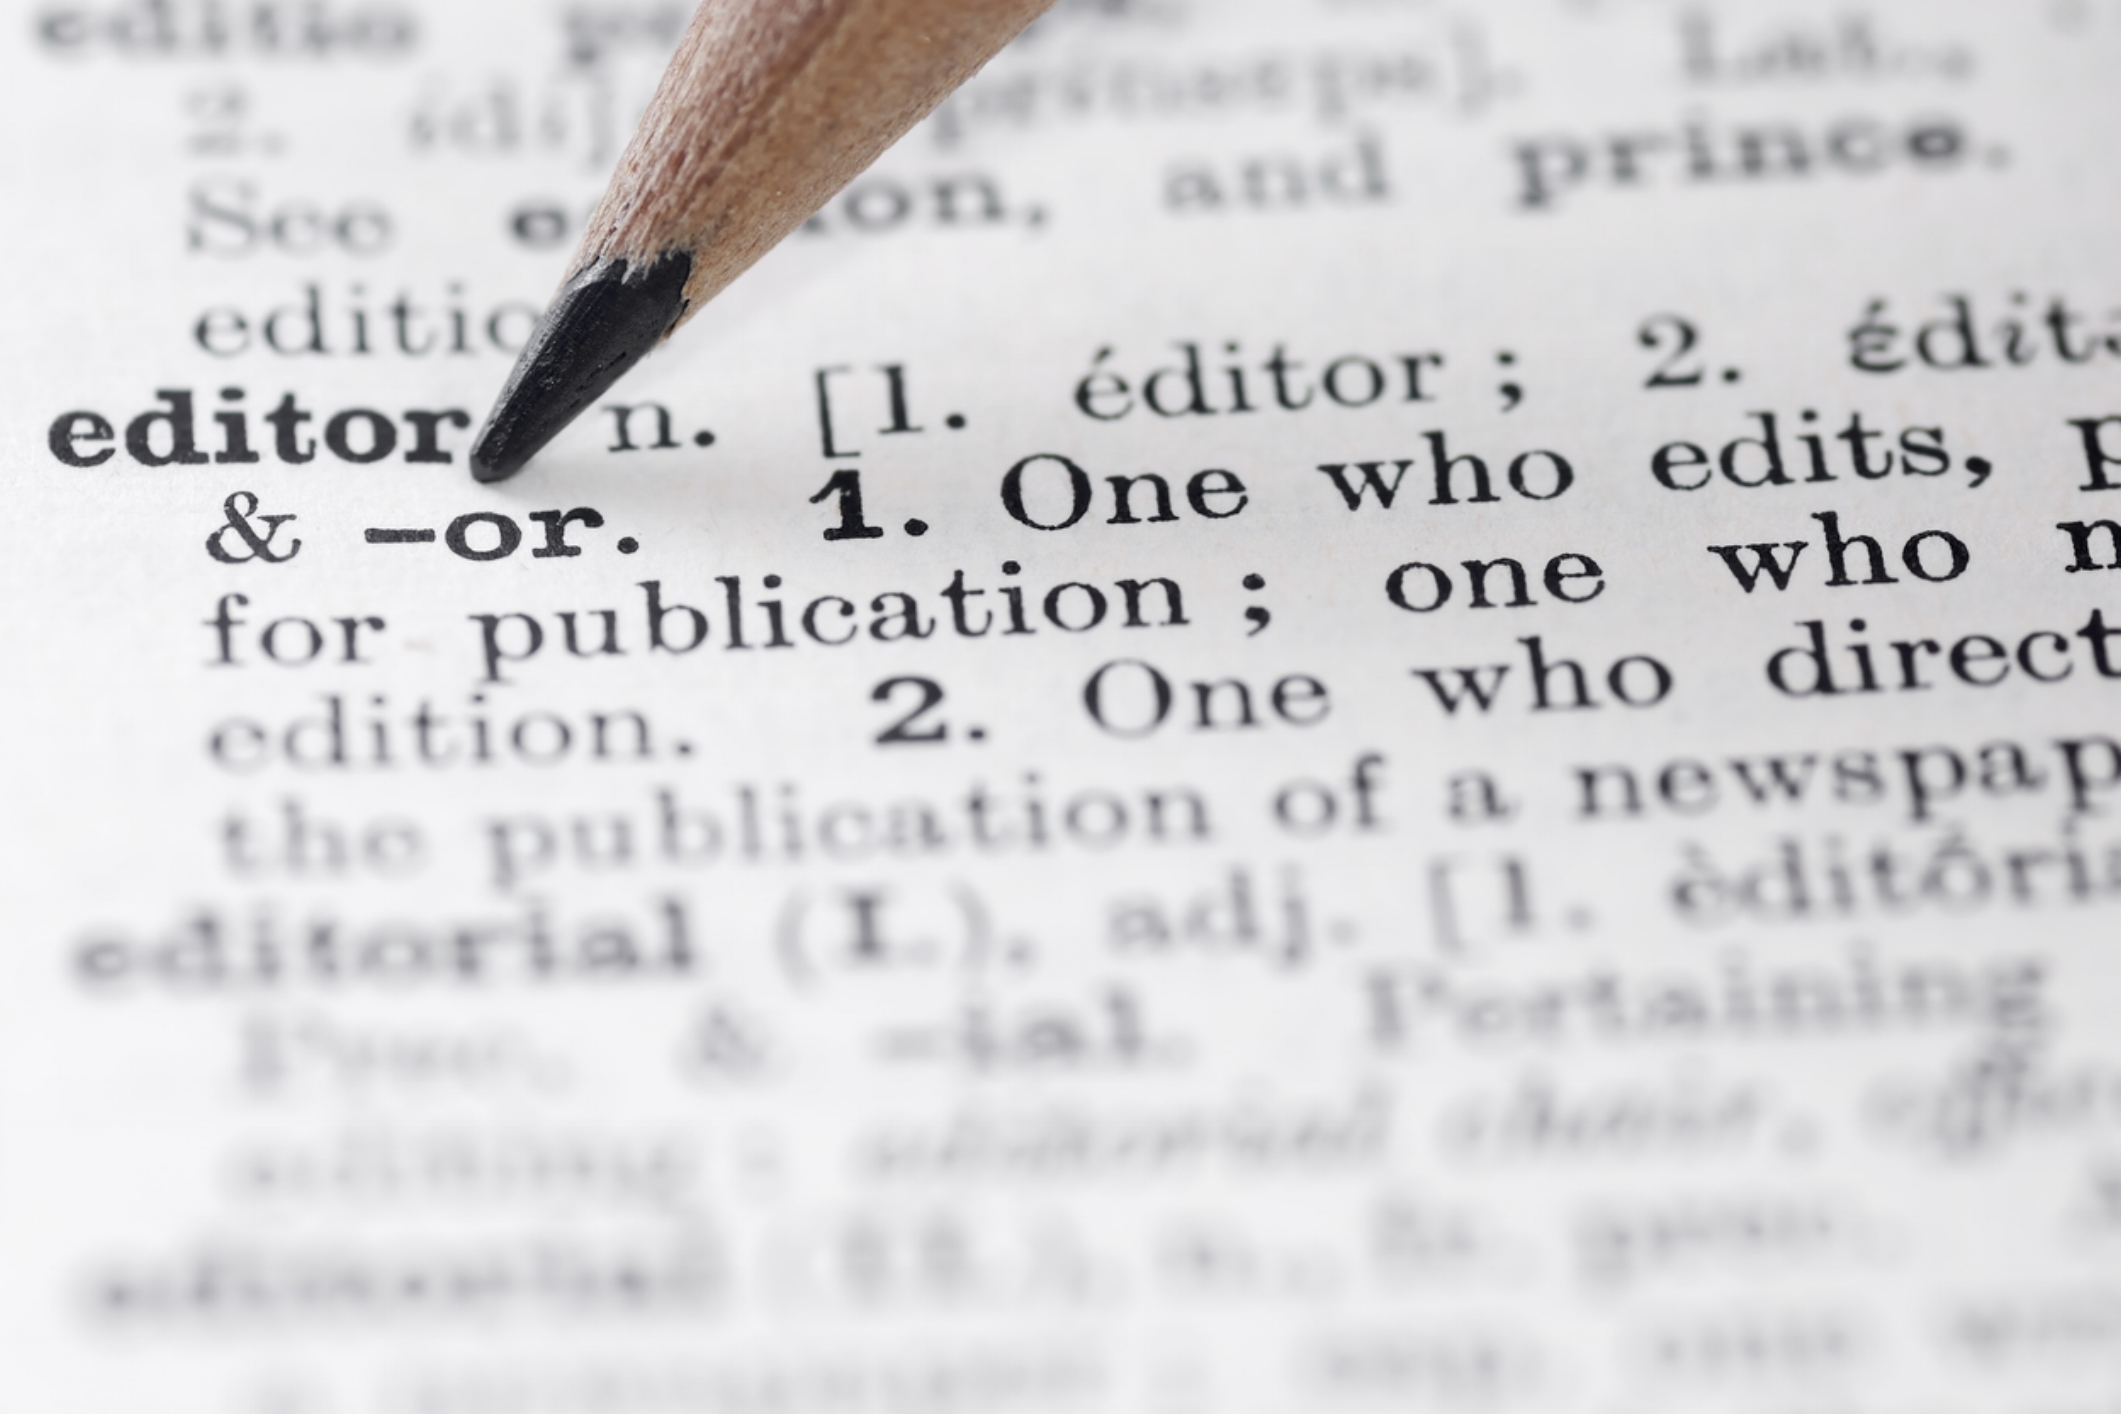 Clarity through exhaustive editing - An accurate examination of what is required...